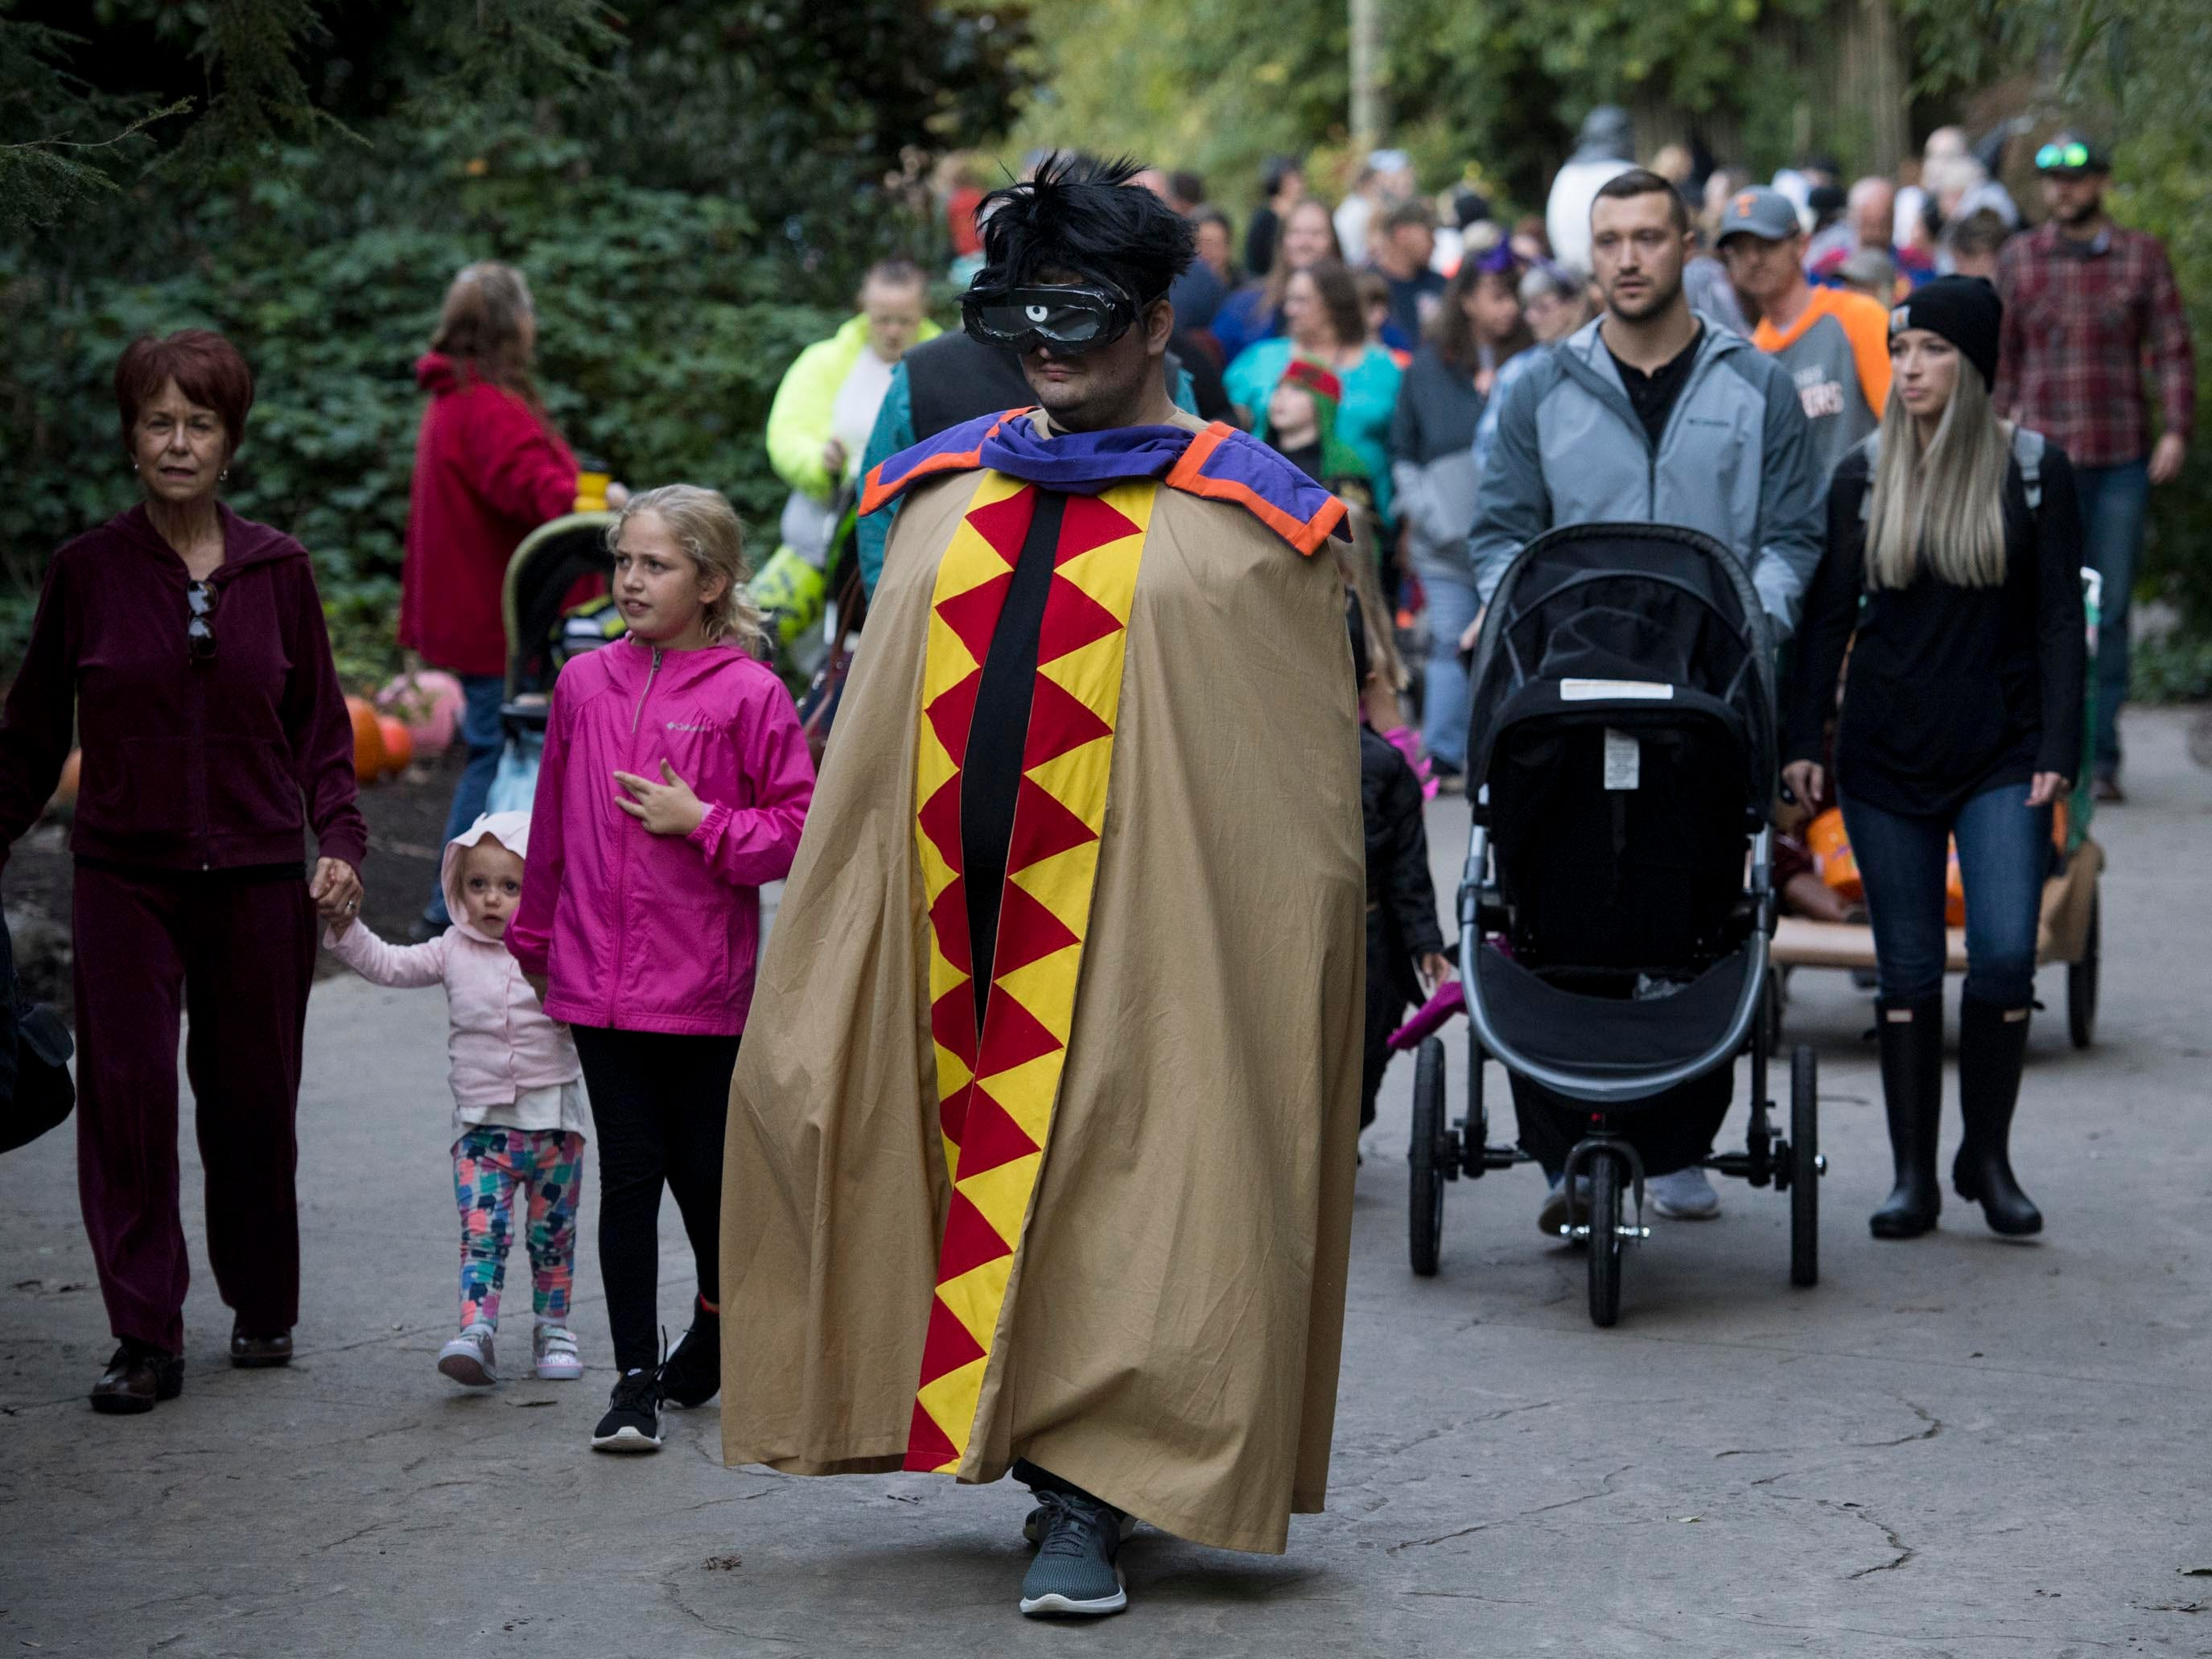 There were hundreds of families and thousands of costumes at Zoo Knoxville's Boo! at the Zoo on Saturday, October 20, 2018.